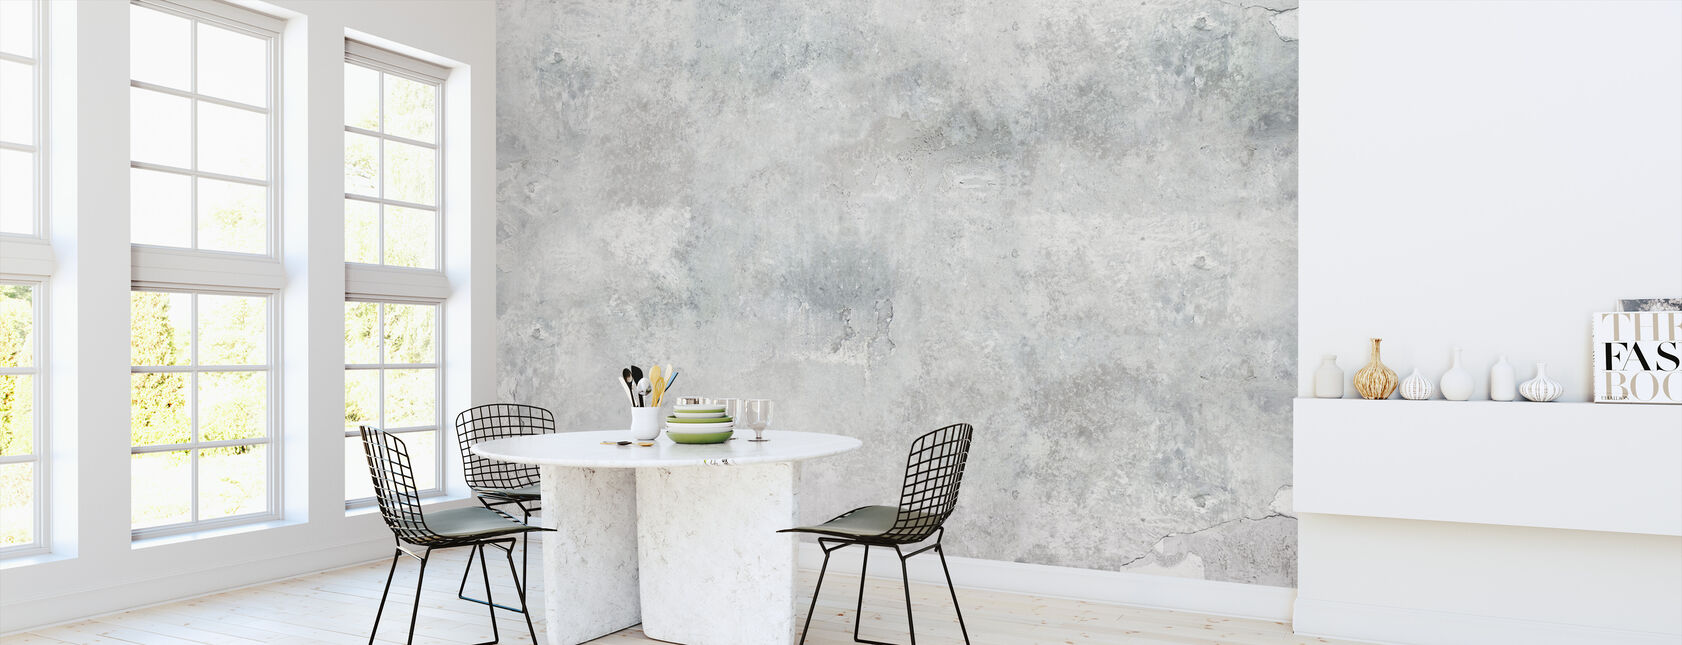 Torned Concrete Wall - Wallpaper - Kitchen